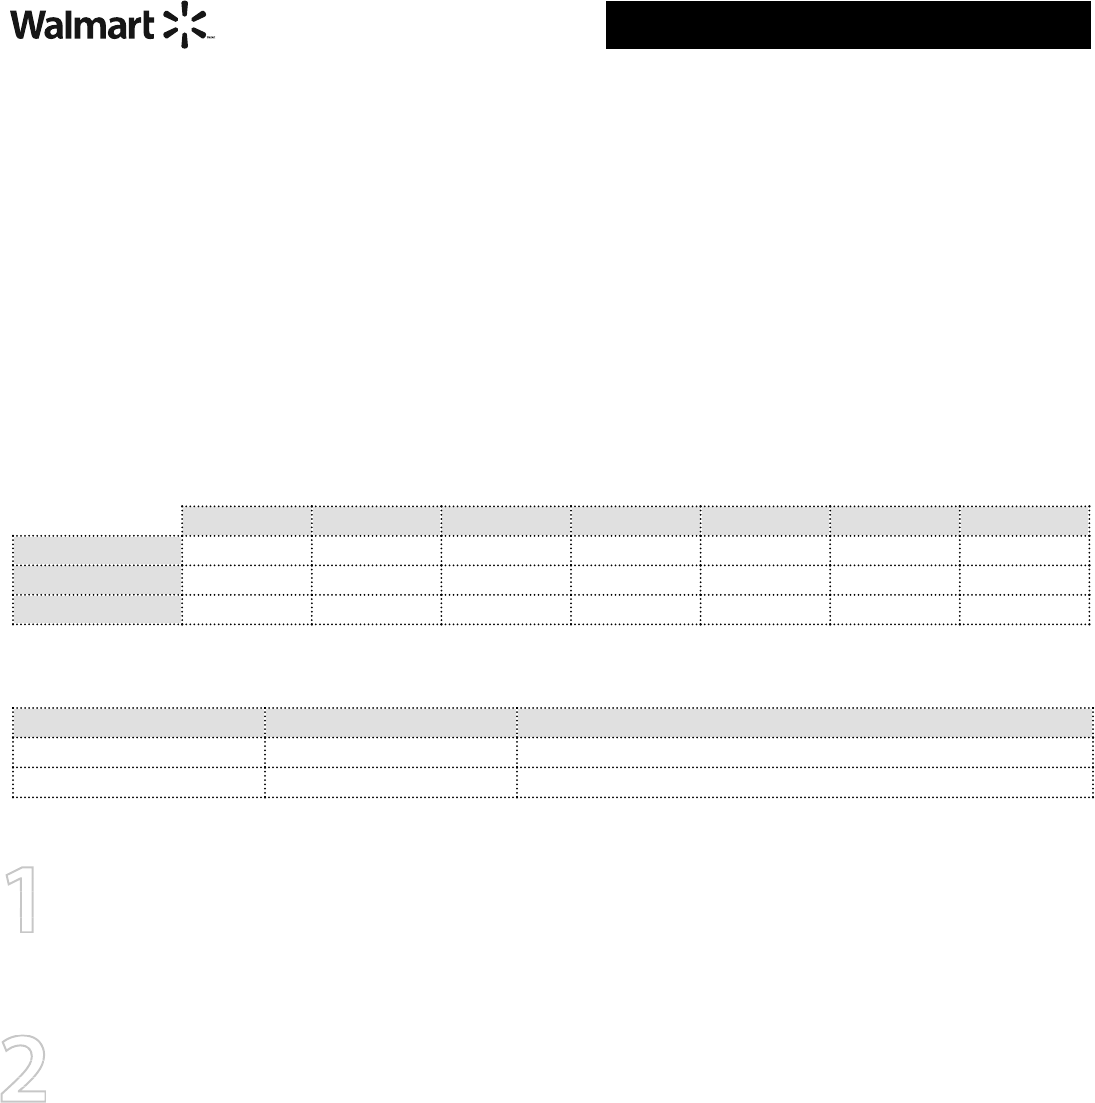 Free printable walmart job application form walmartjob free printable walmart job application form falaconquin